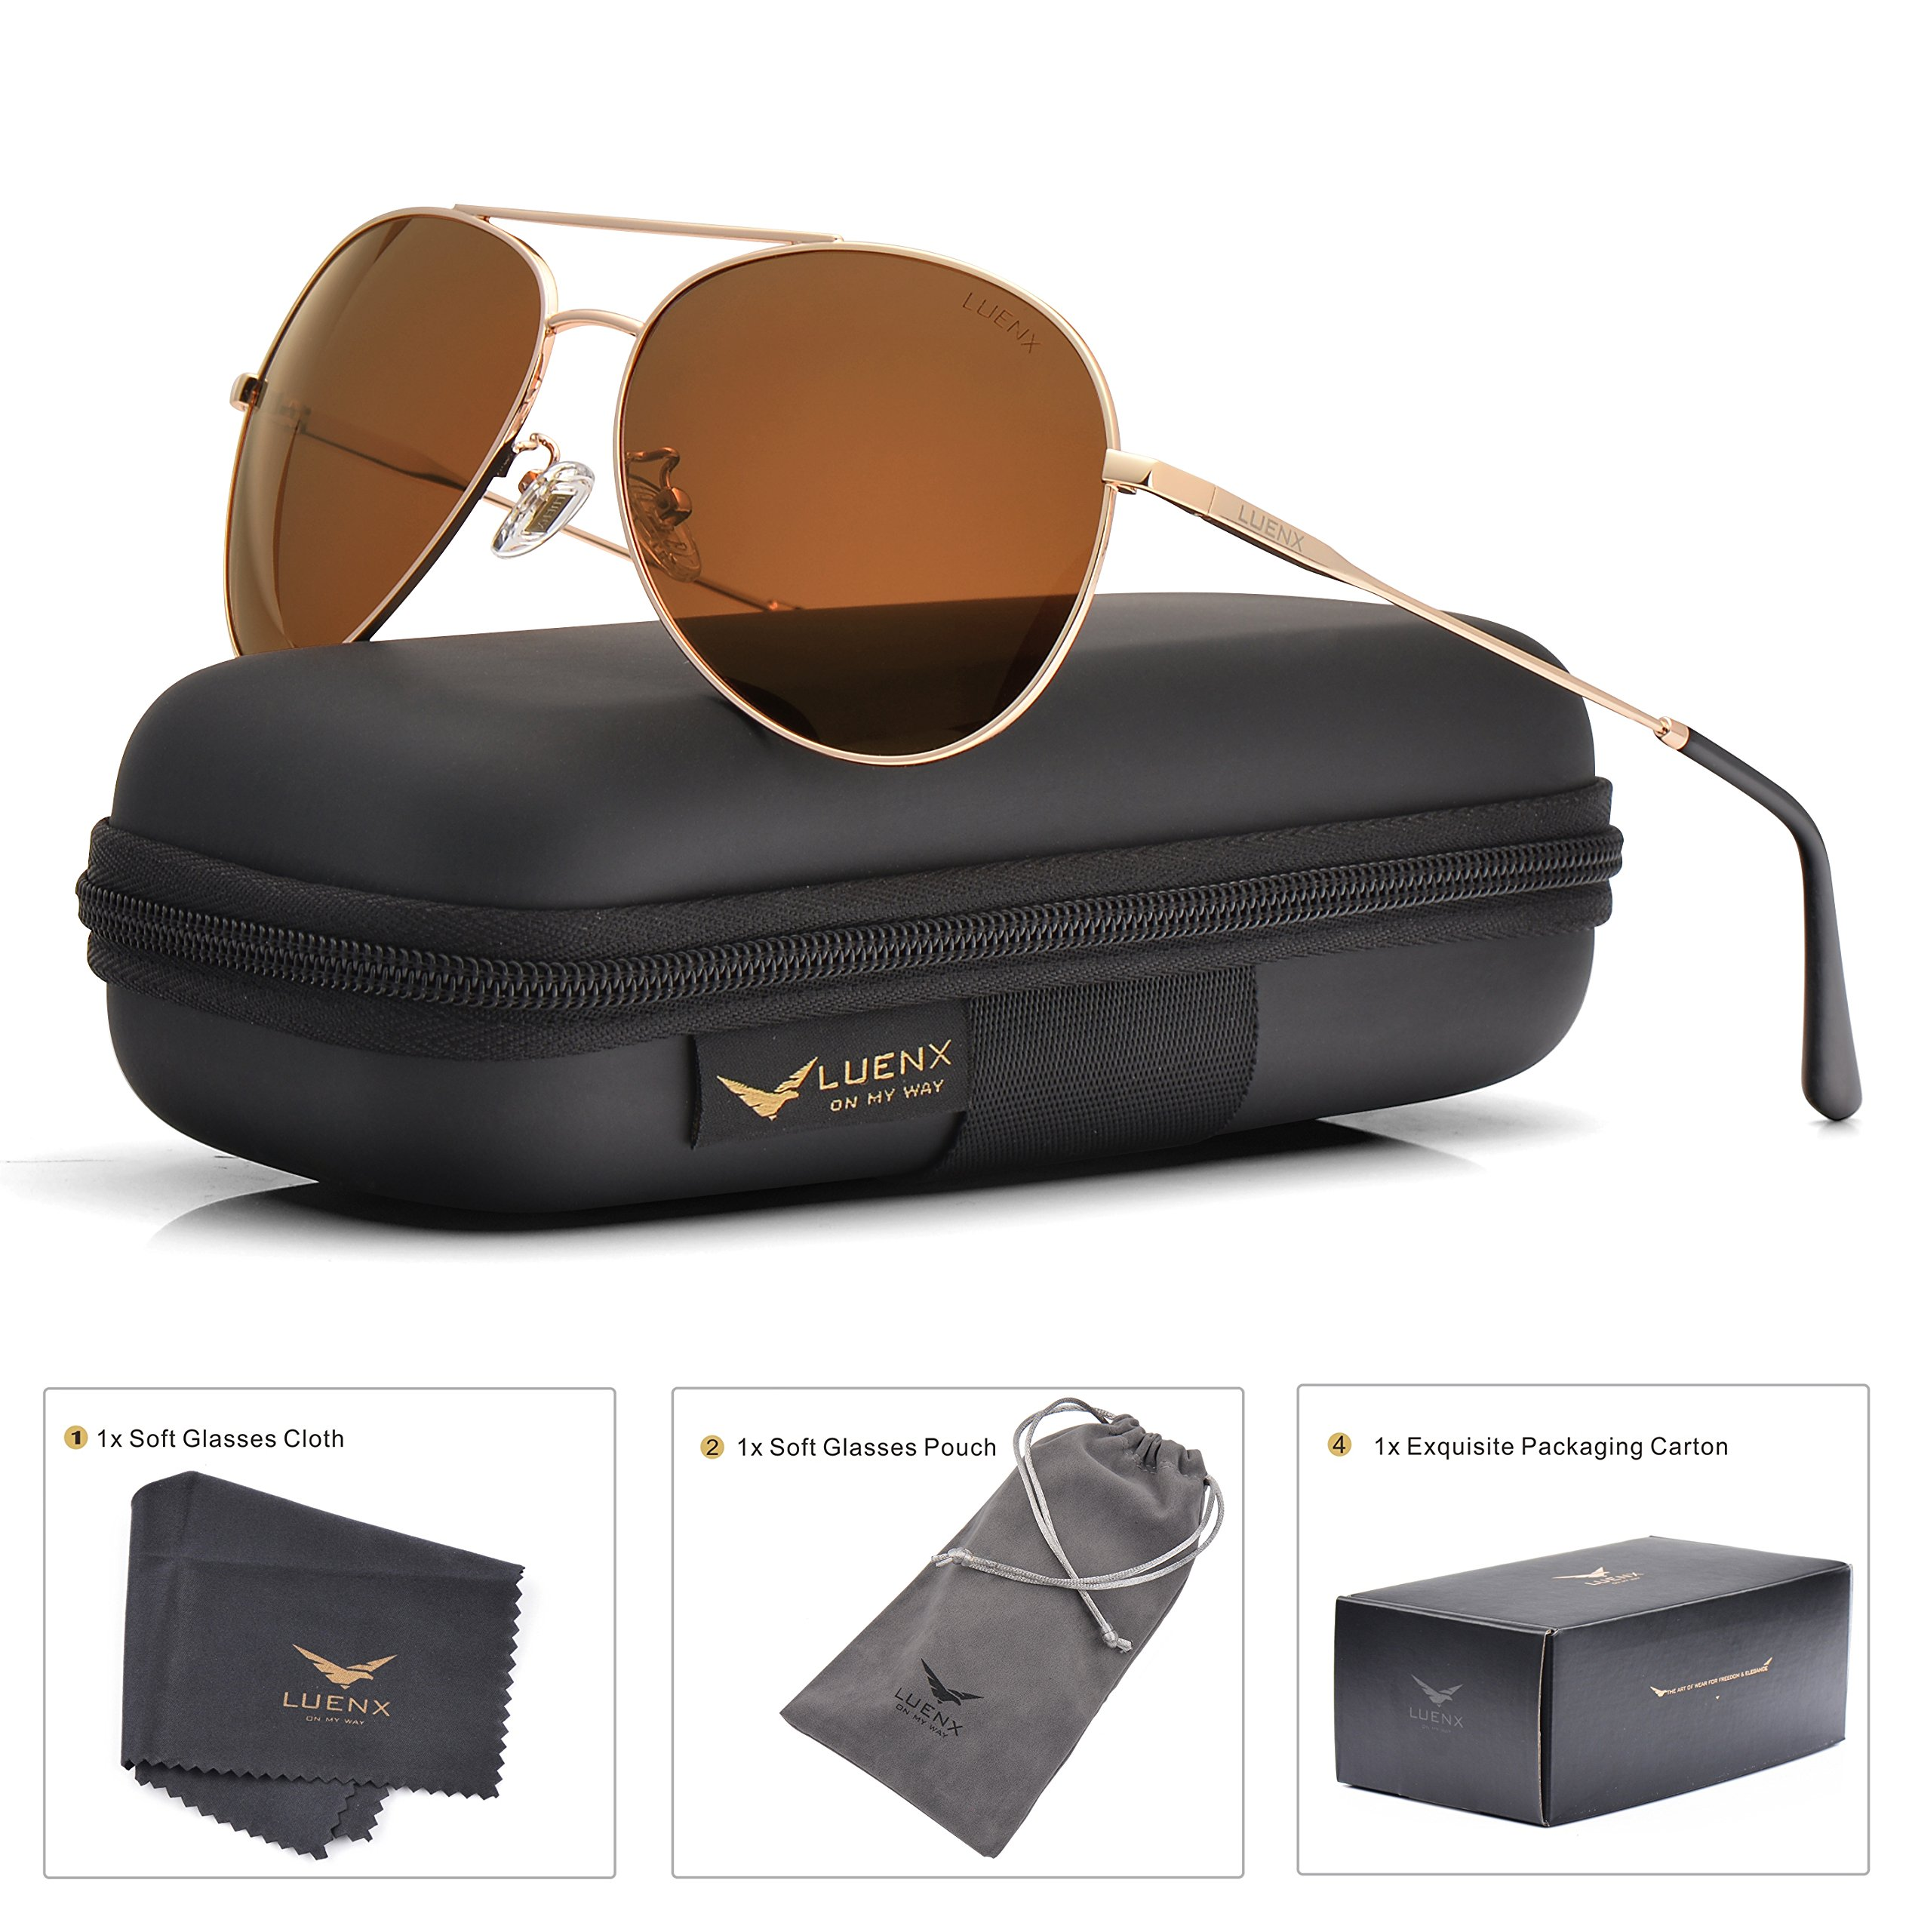 LUENX Men Women Aviator Sunglasses Polarized Brown Lens Metal Frame UV 400 59MM Driving Fashion with Accessories